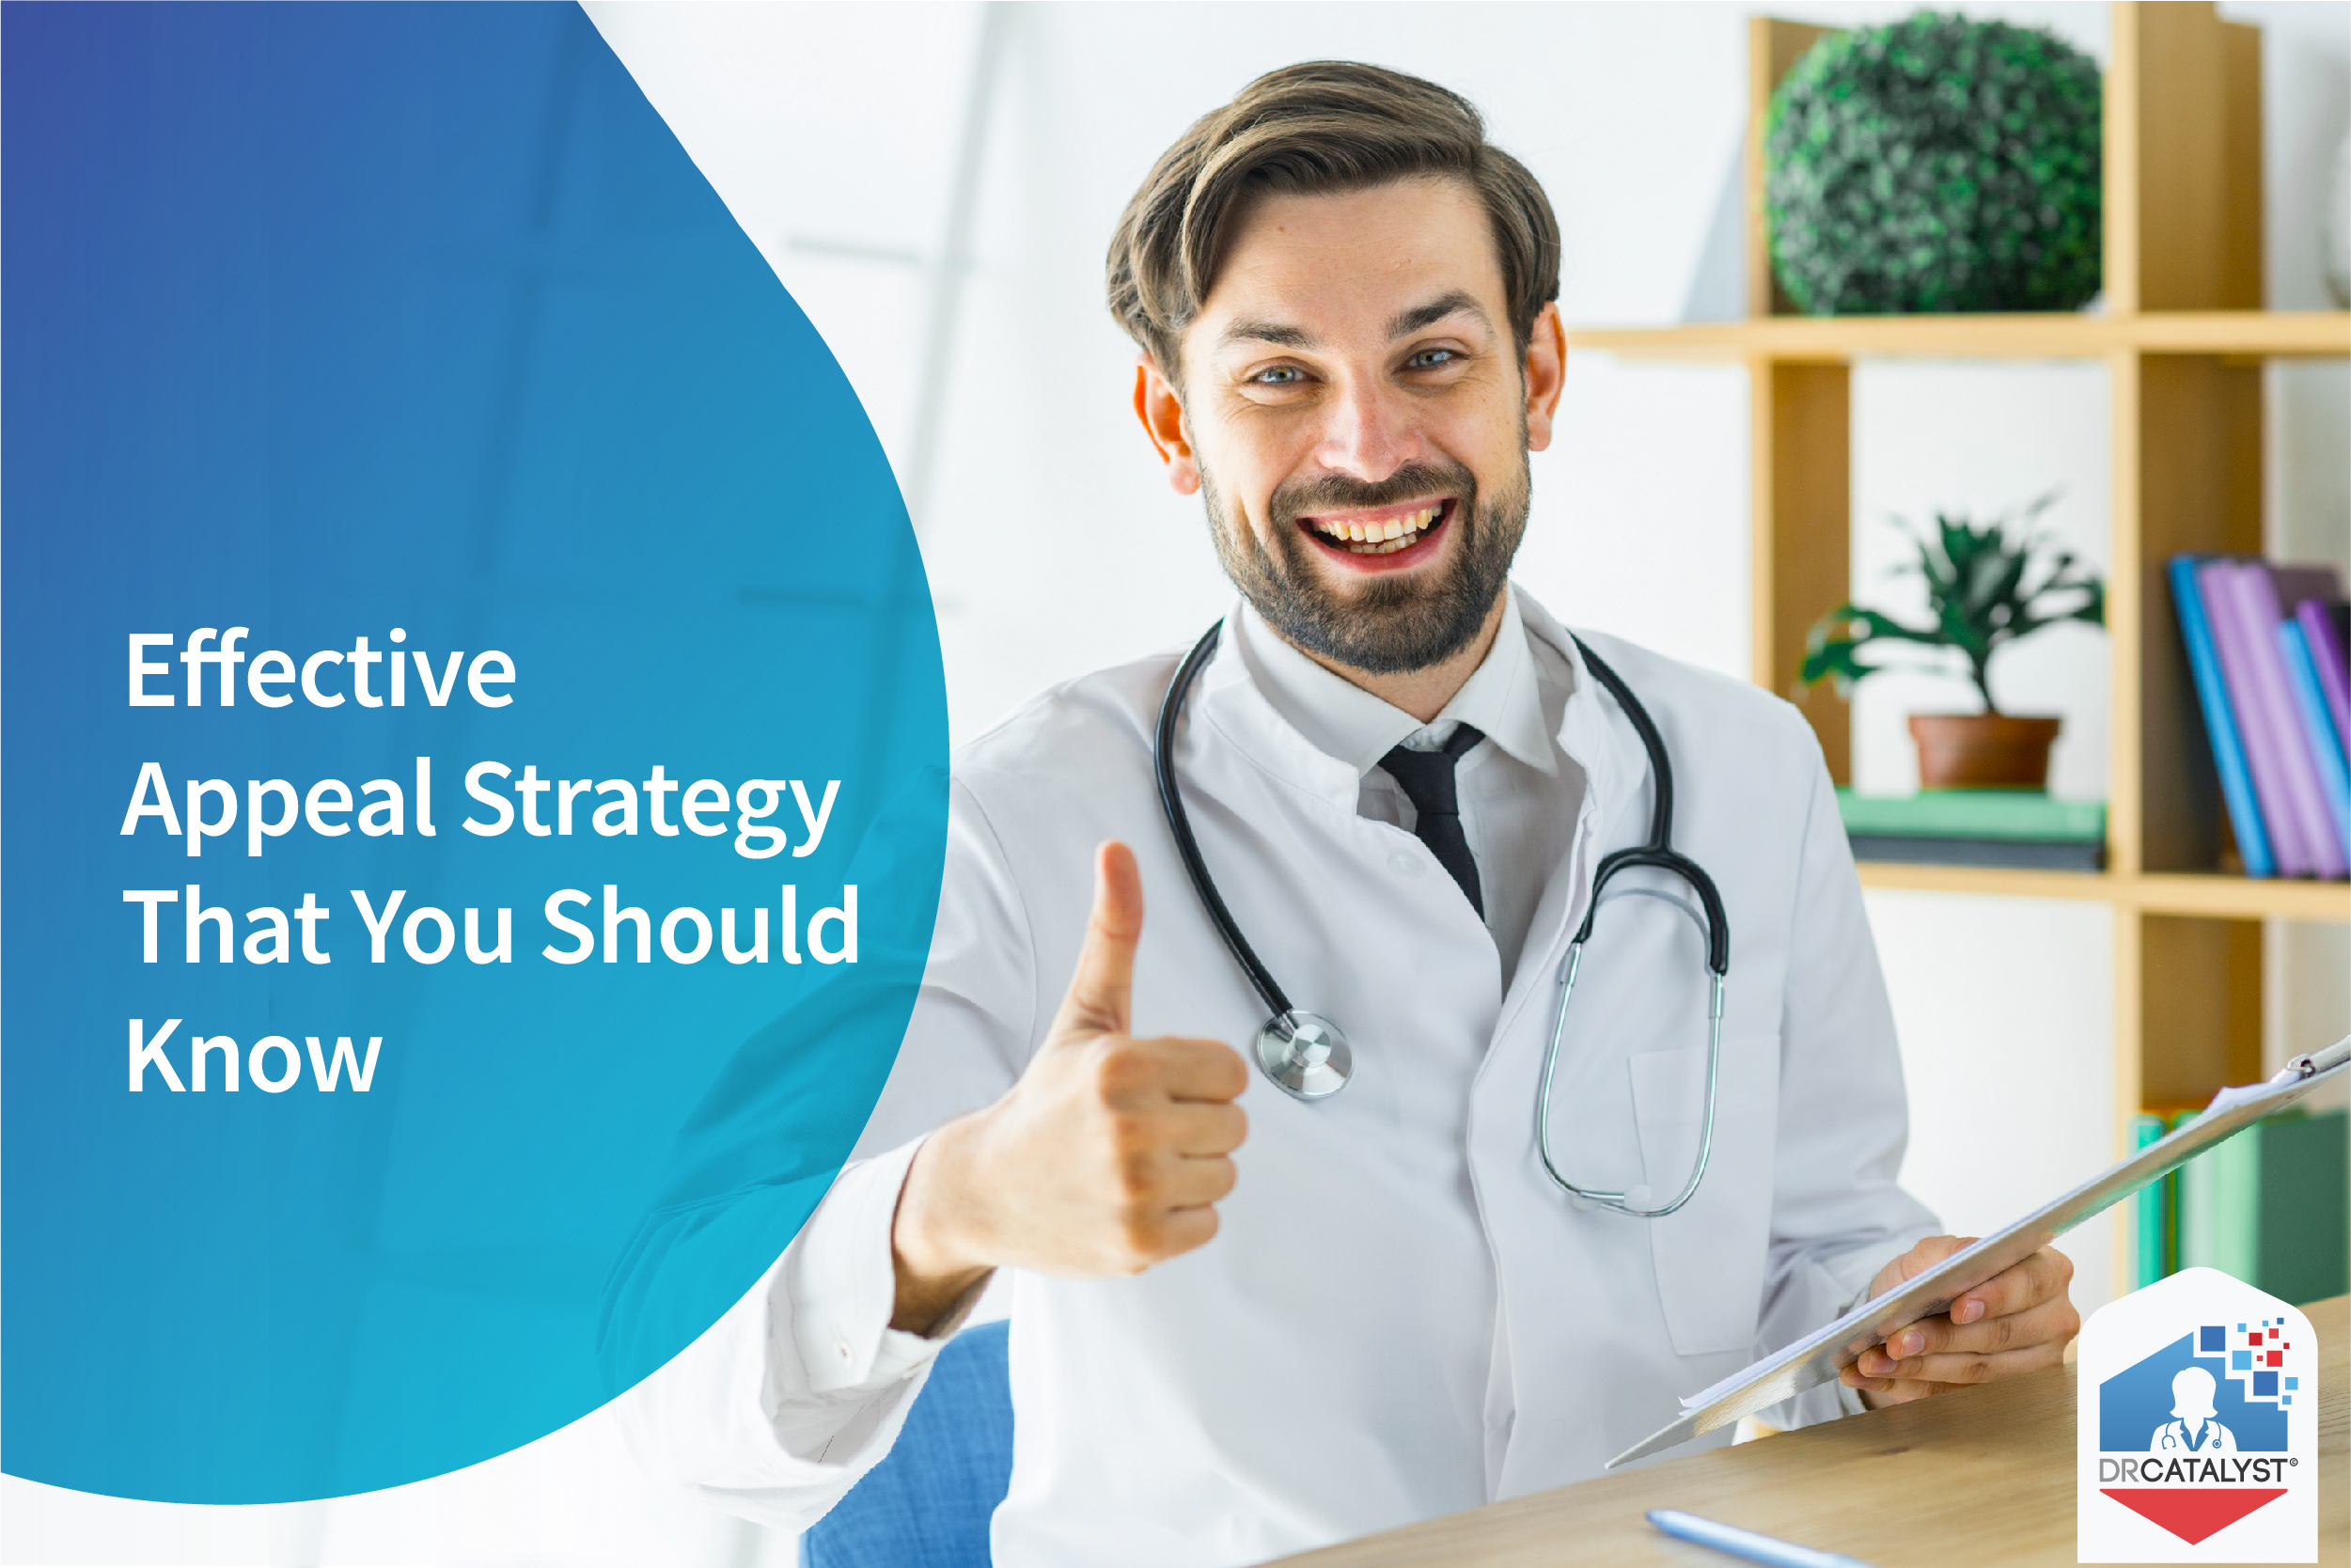 Effective Appeal Strategy That You Should Know